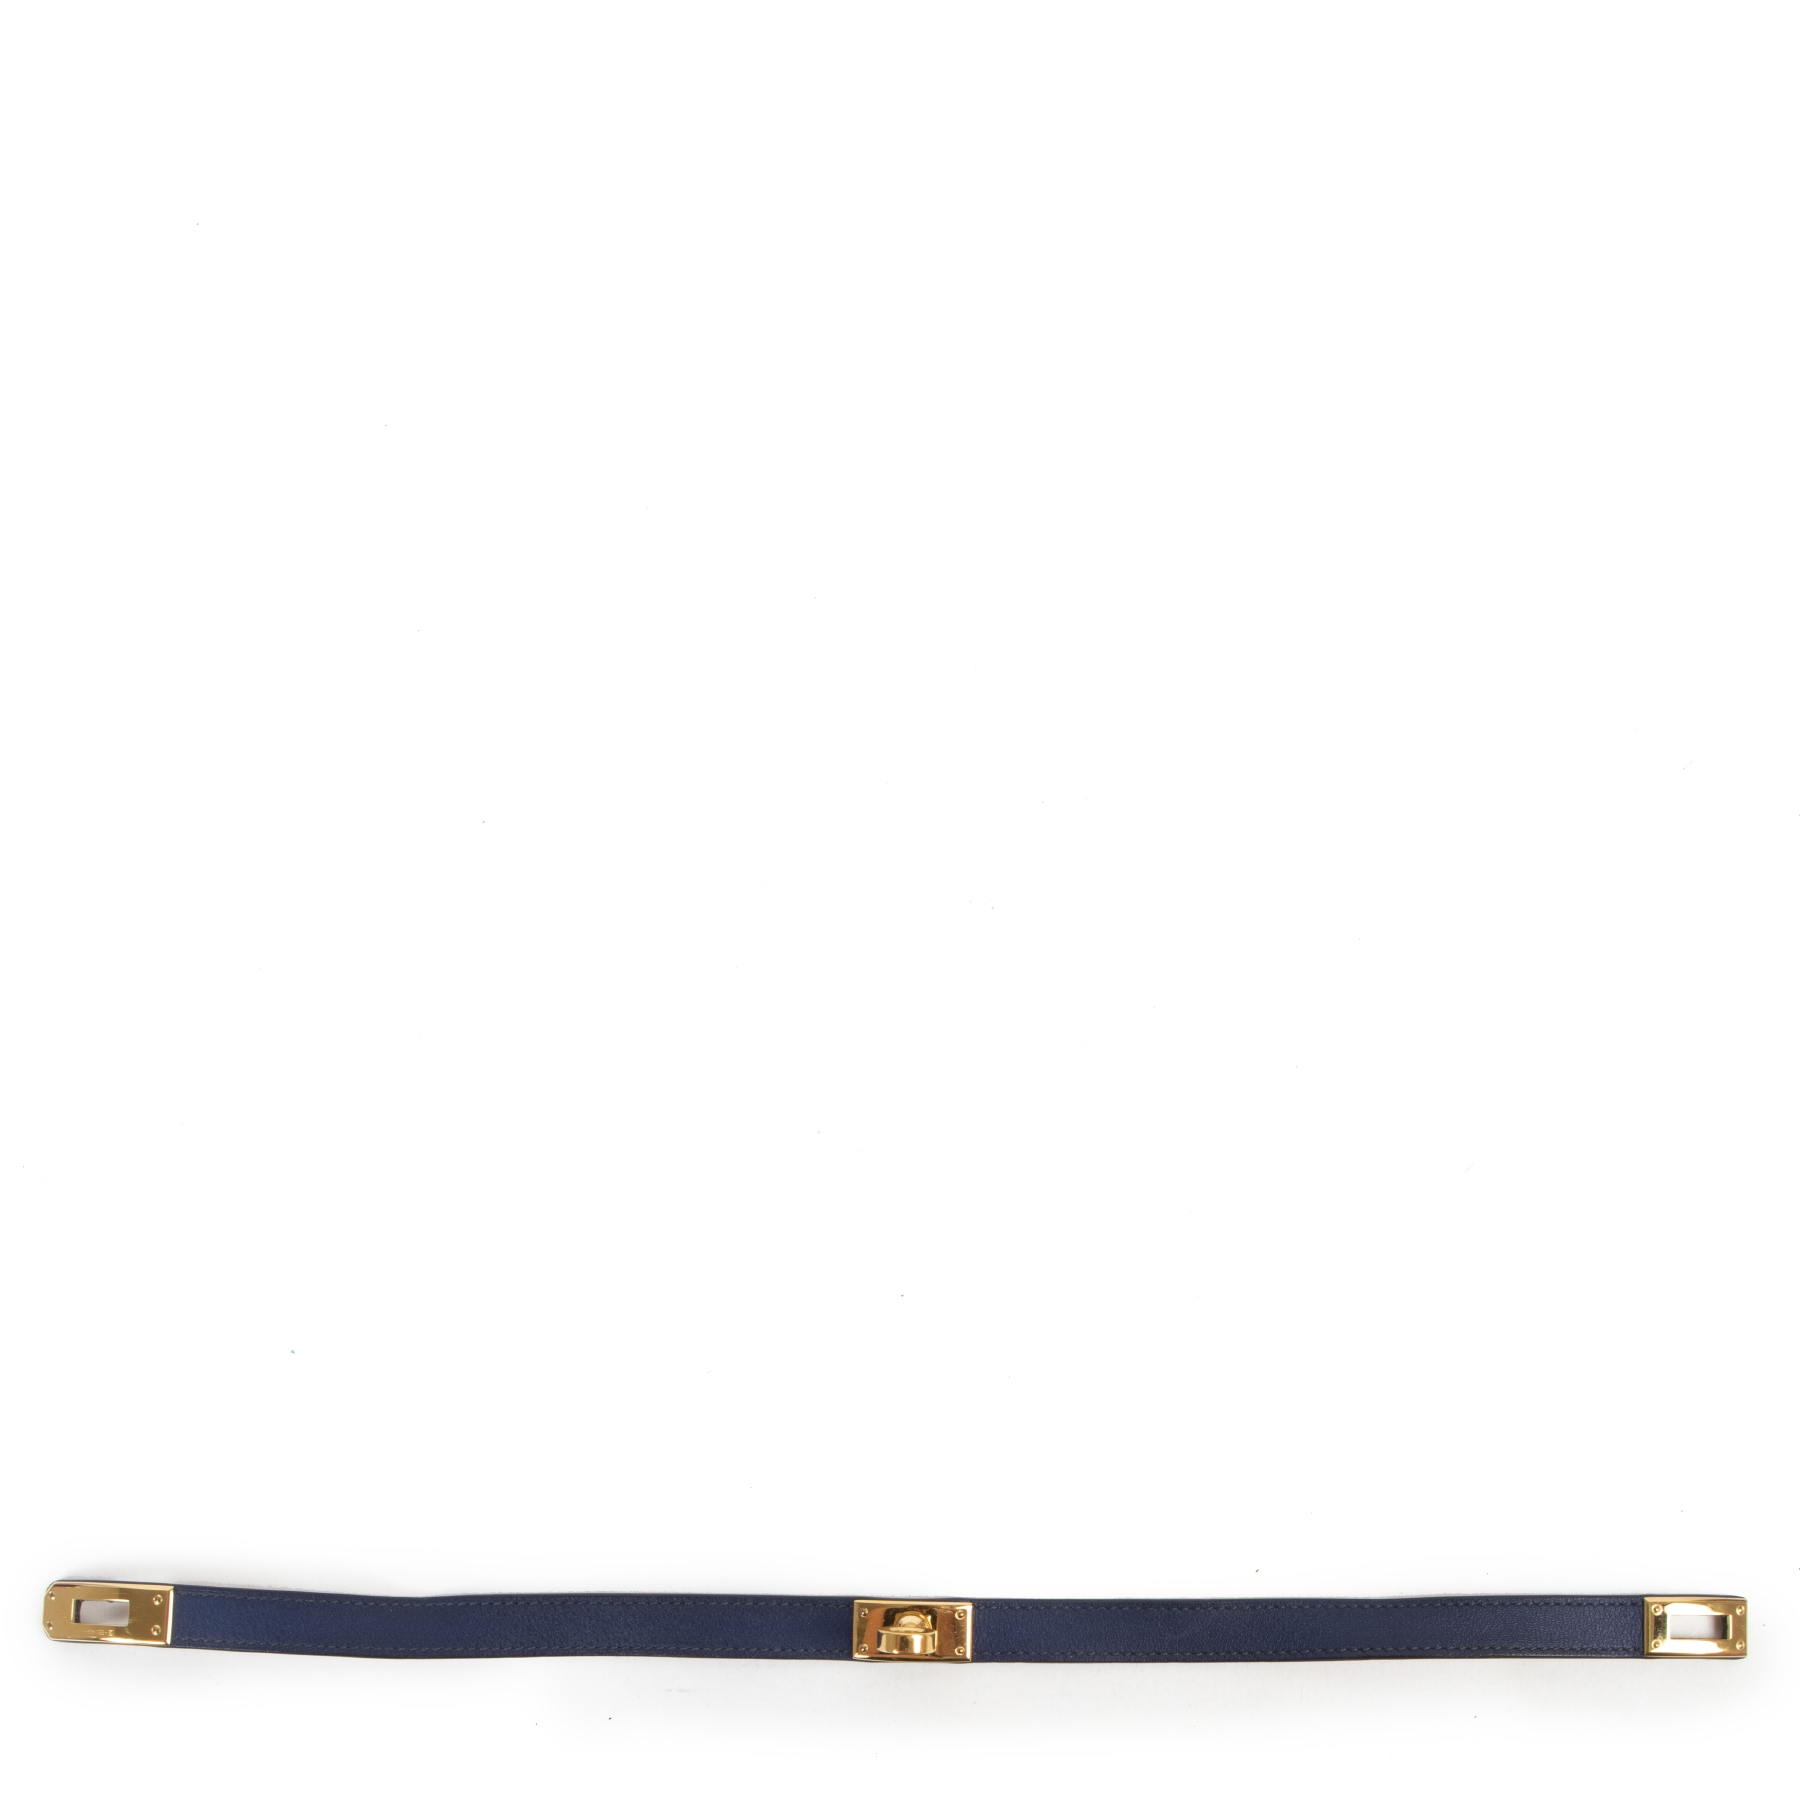 Koop en verkoop uw authentieke designer Hermès Kelly Turnlock Leather Bracelet 'Bleu Nuit' GHW